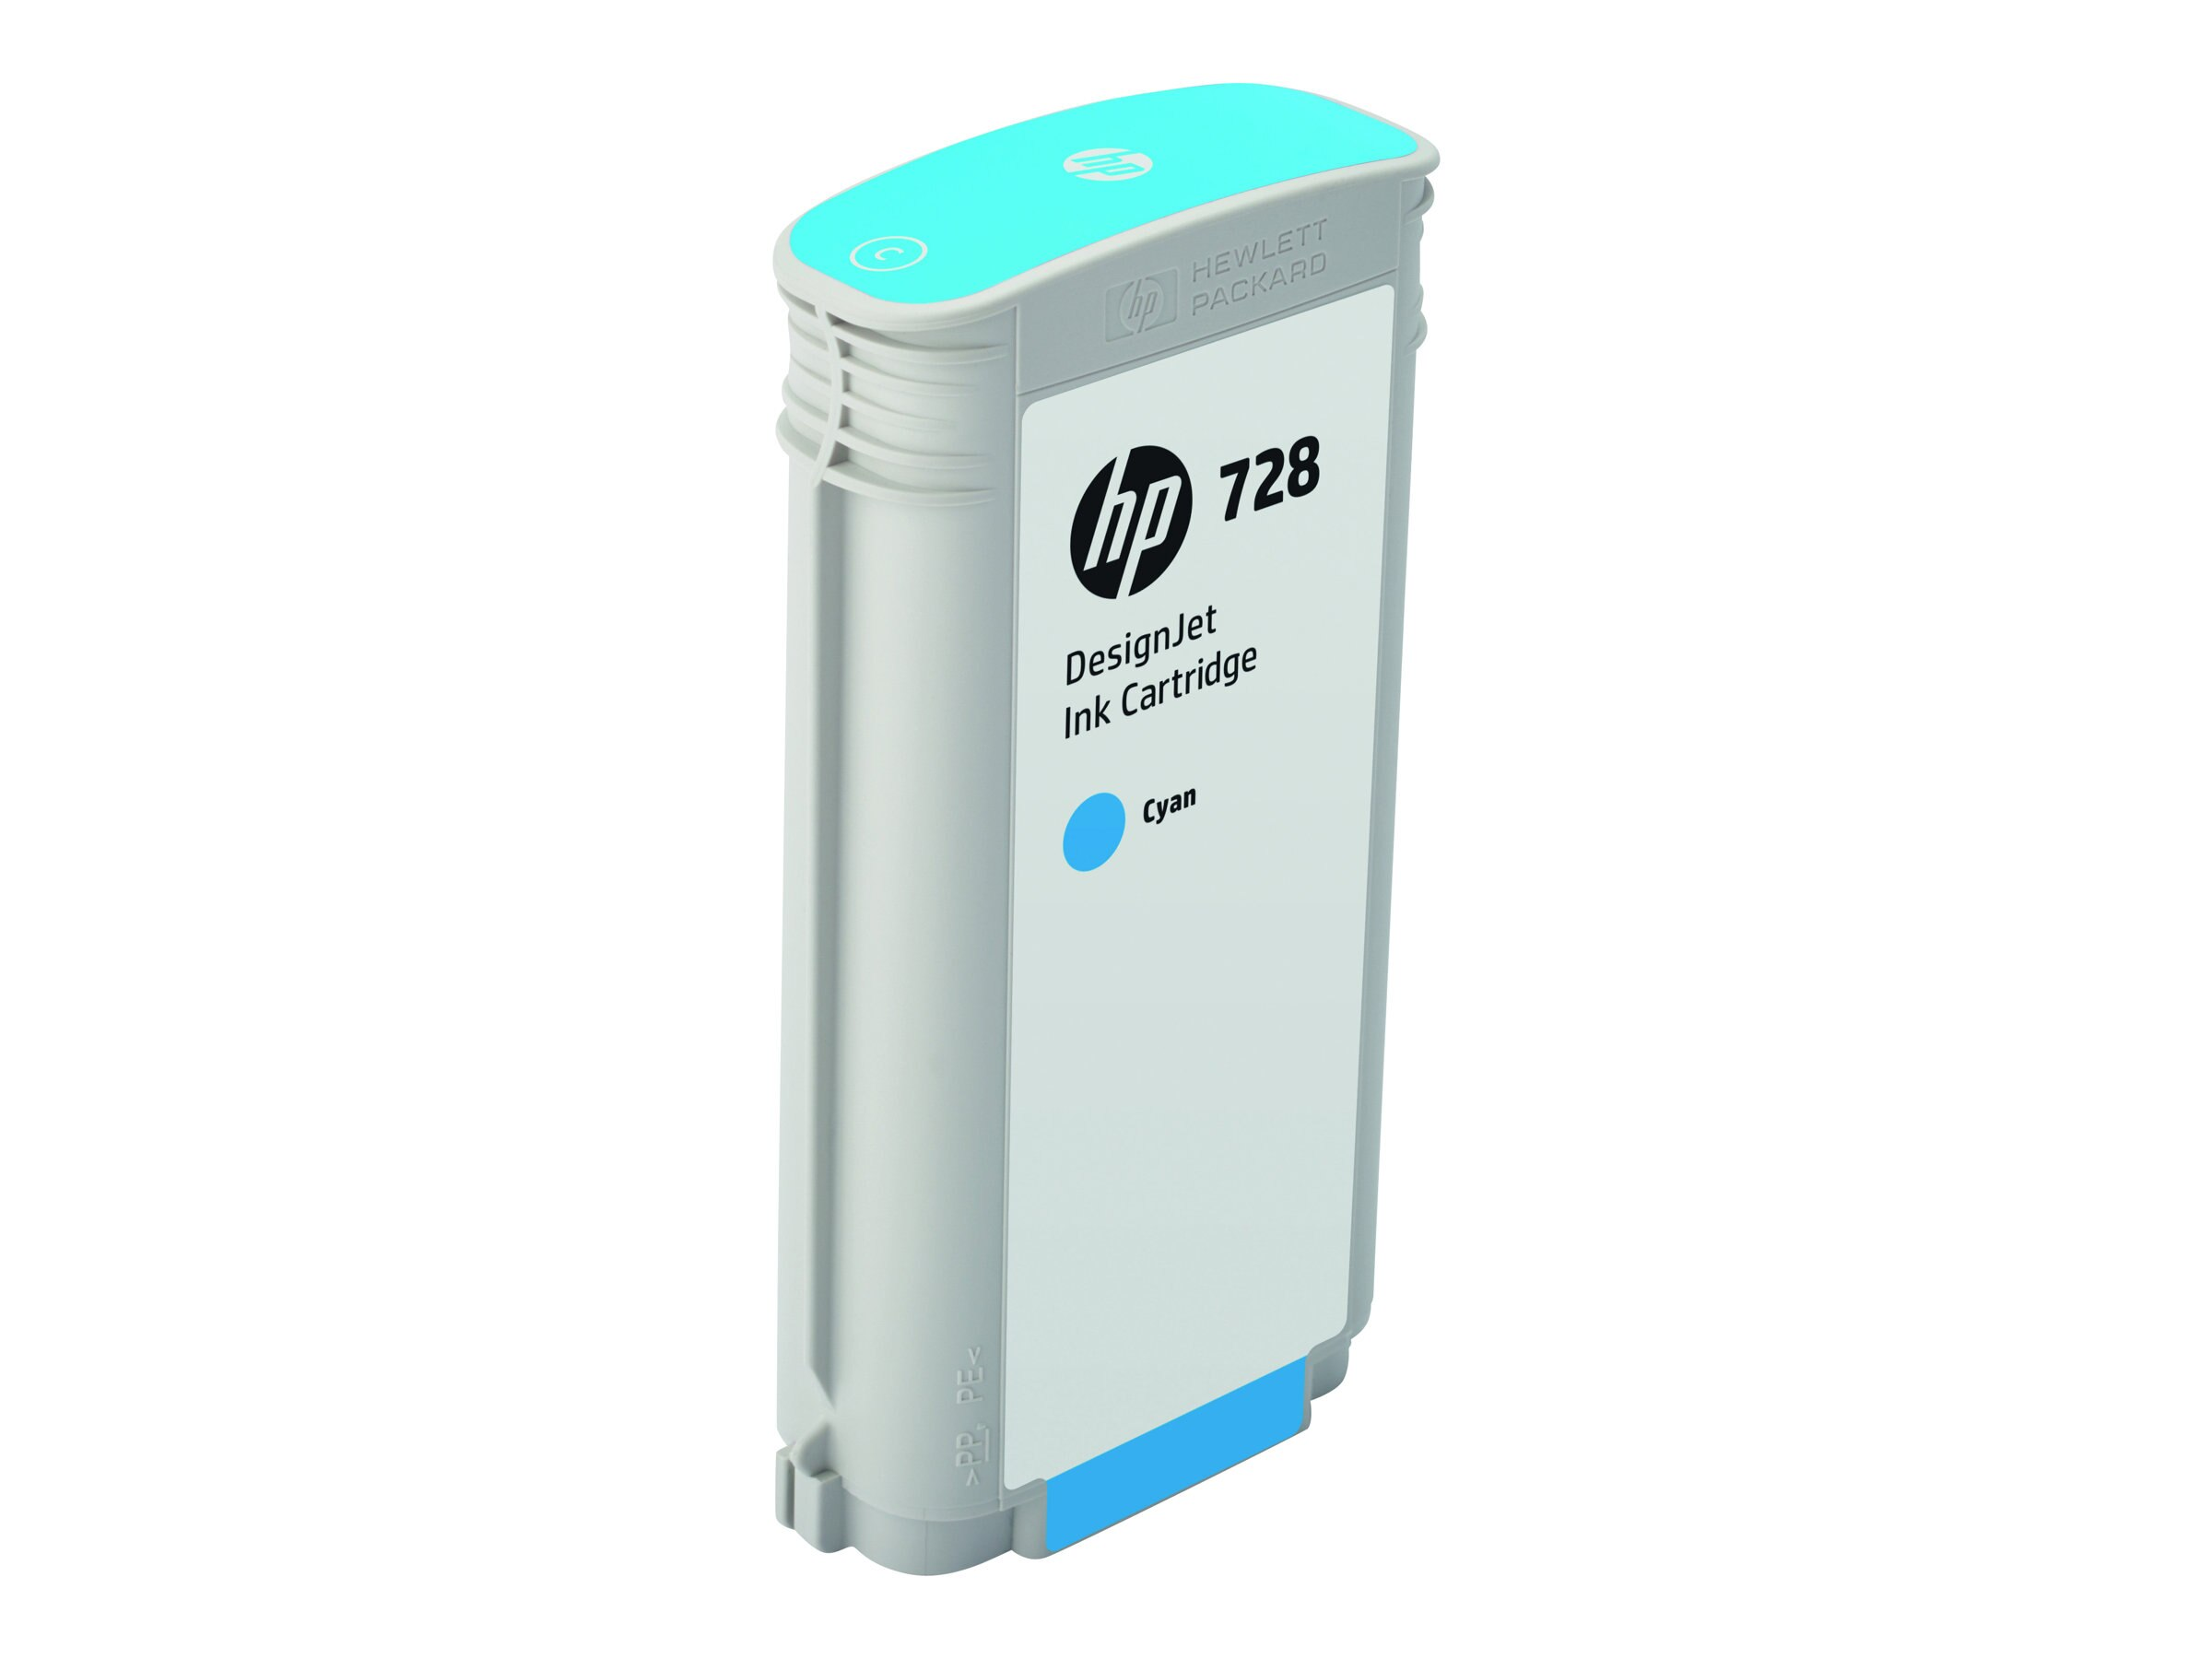 HP 728 (F9J67A) 130ml Cyan Designjet Ink Cartridge for HP DesignJet T730 & T830 Series